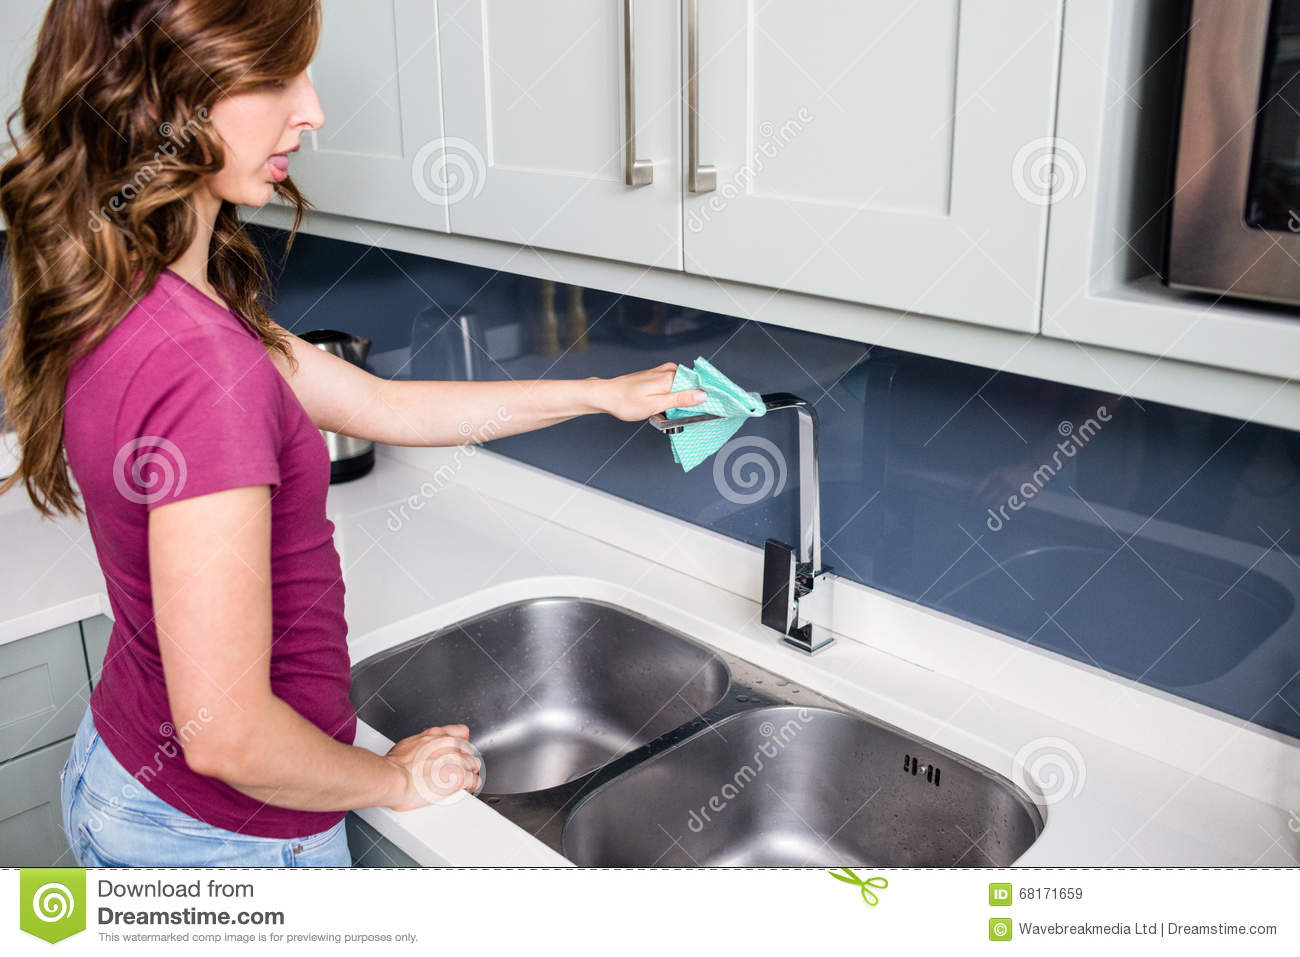 Woman Cleaning Faucet At Kitchen Sink Stock Image Image Of Brown